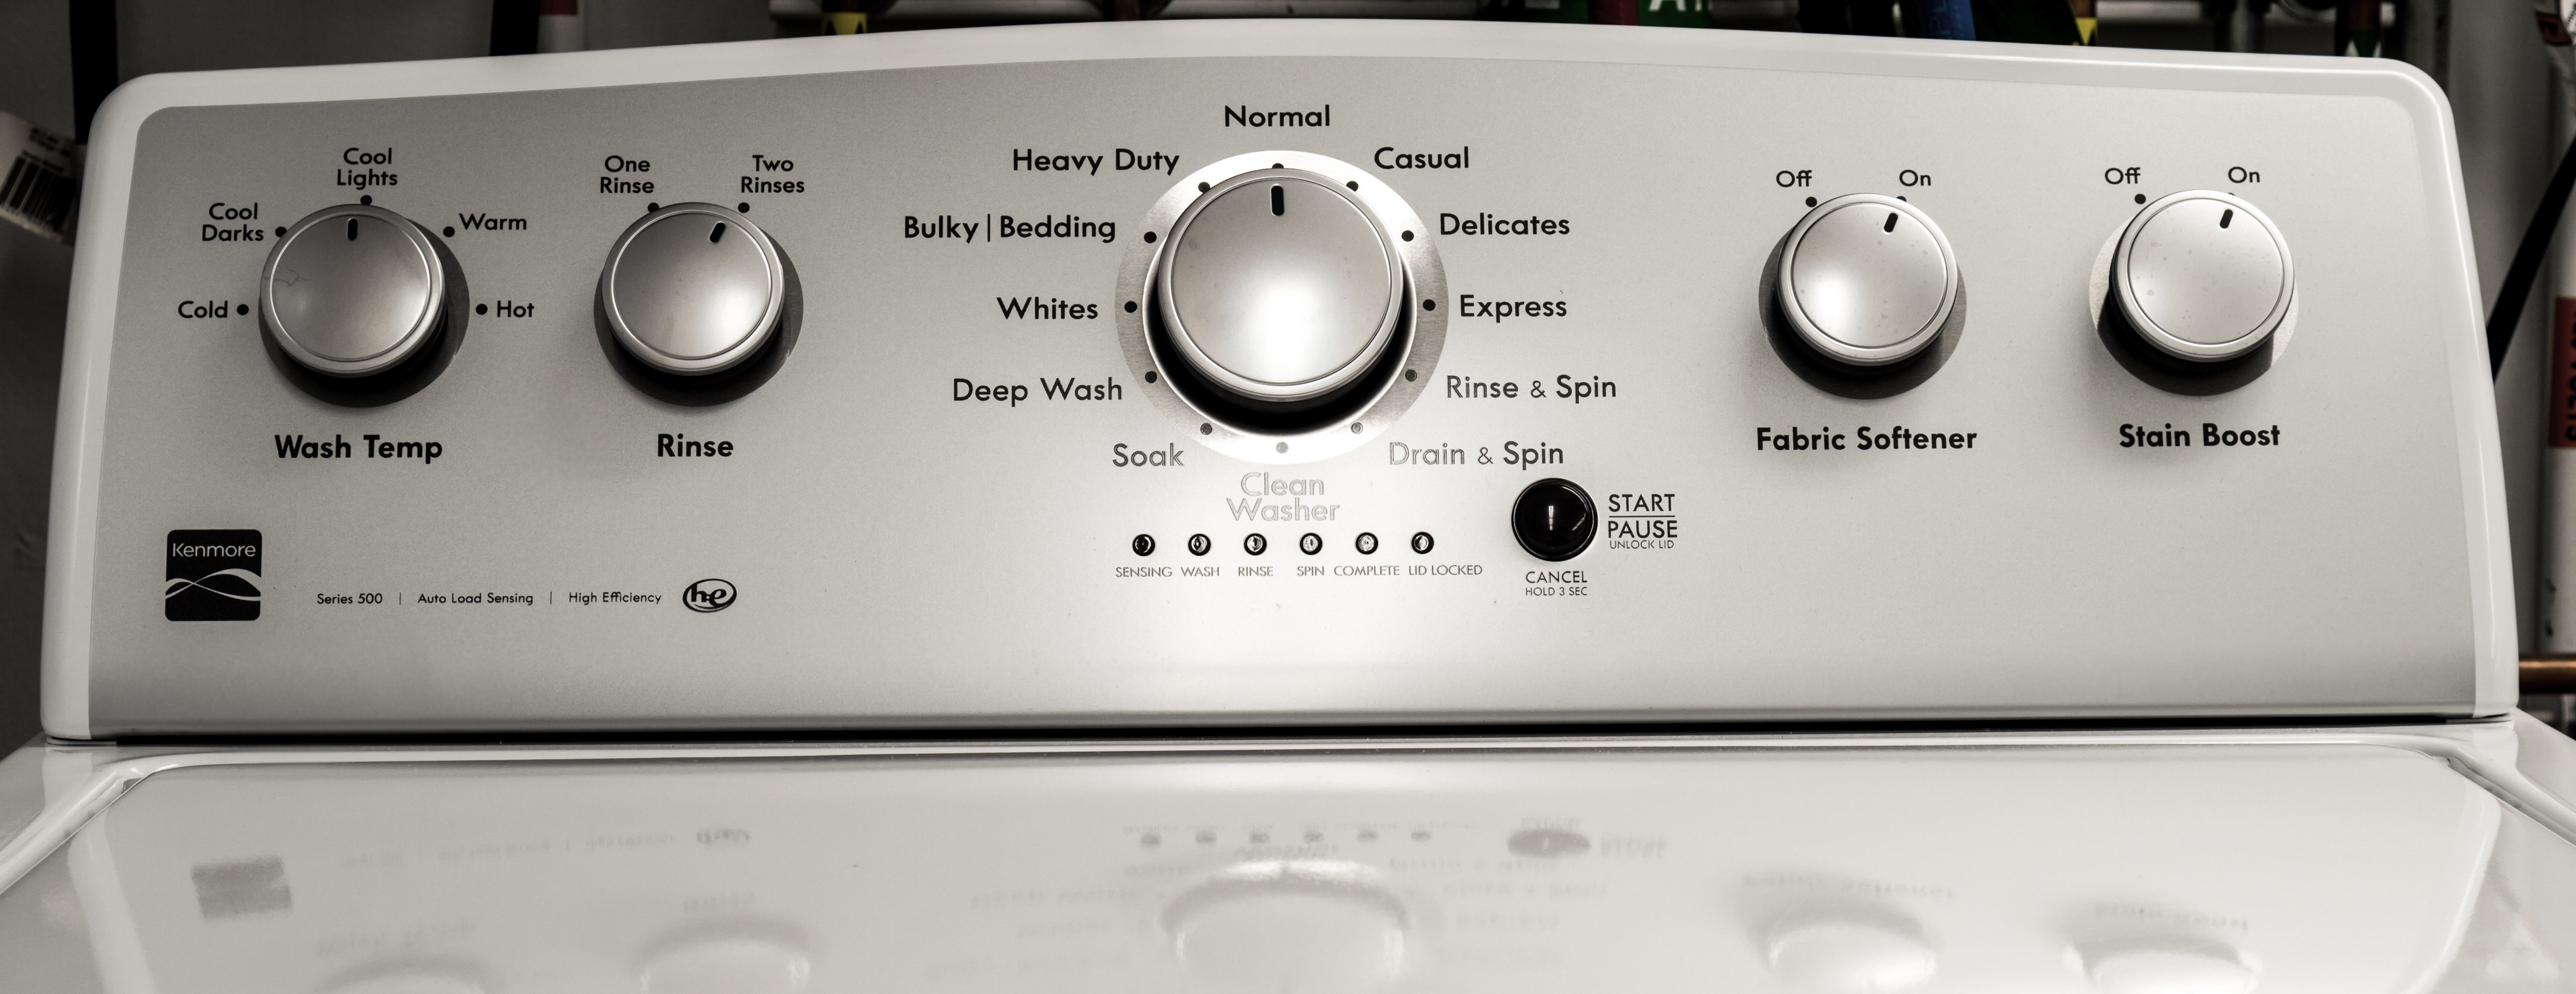 kenmore washing machine panel